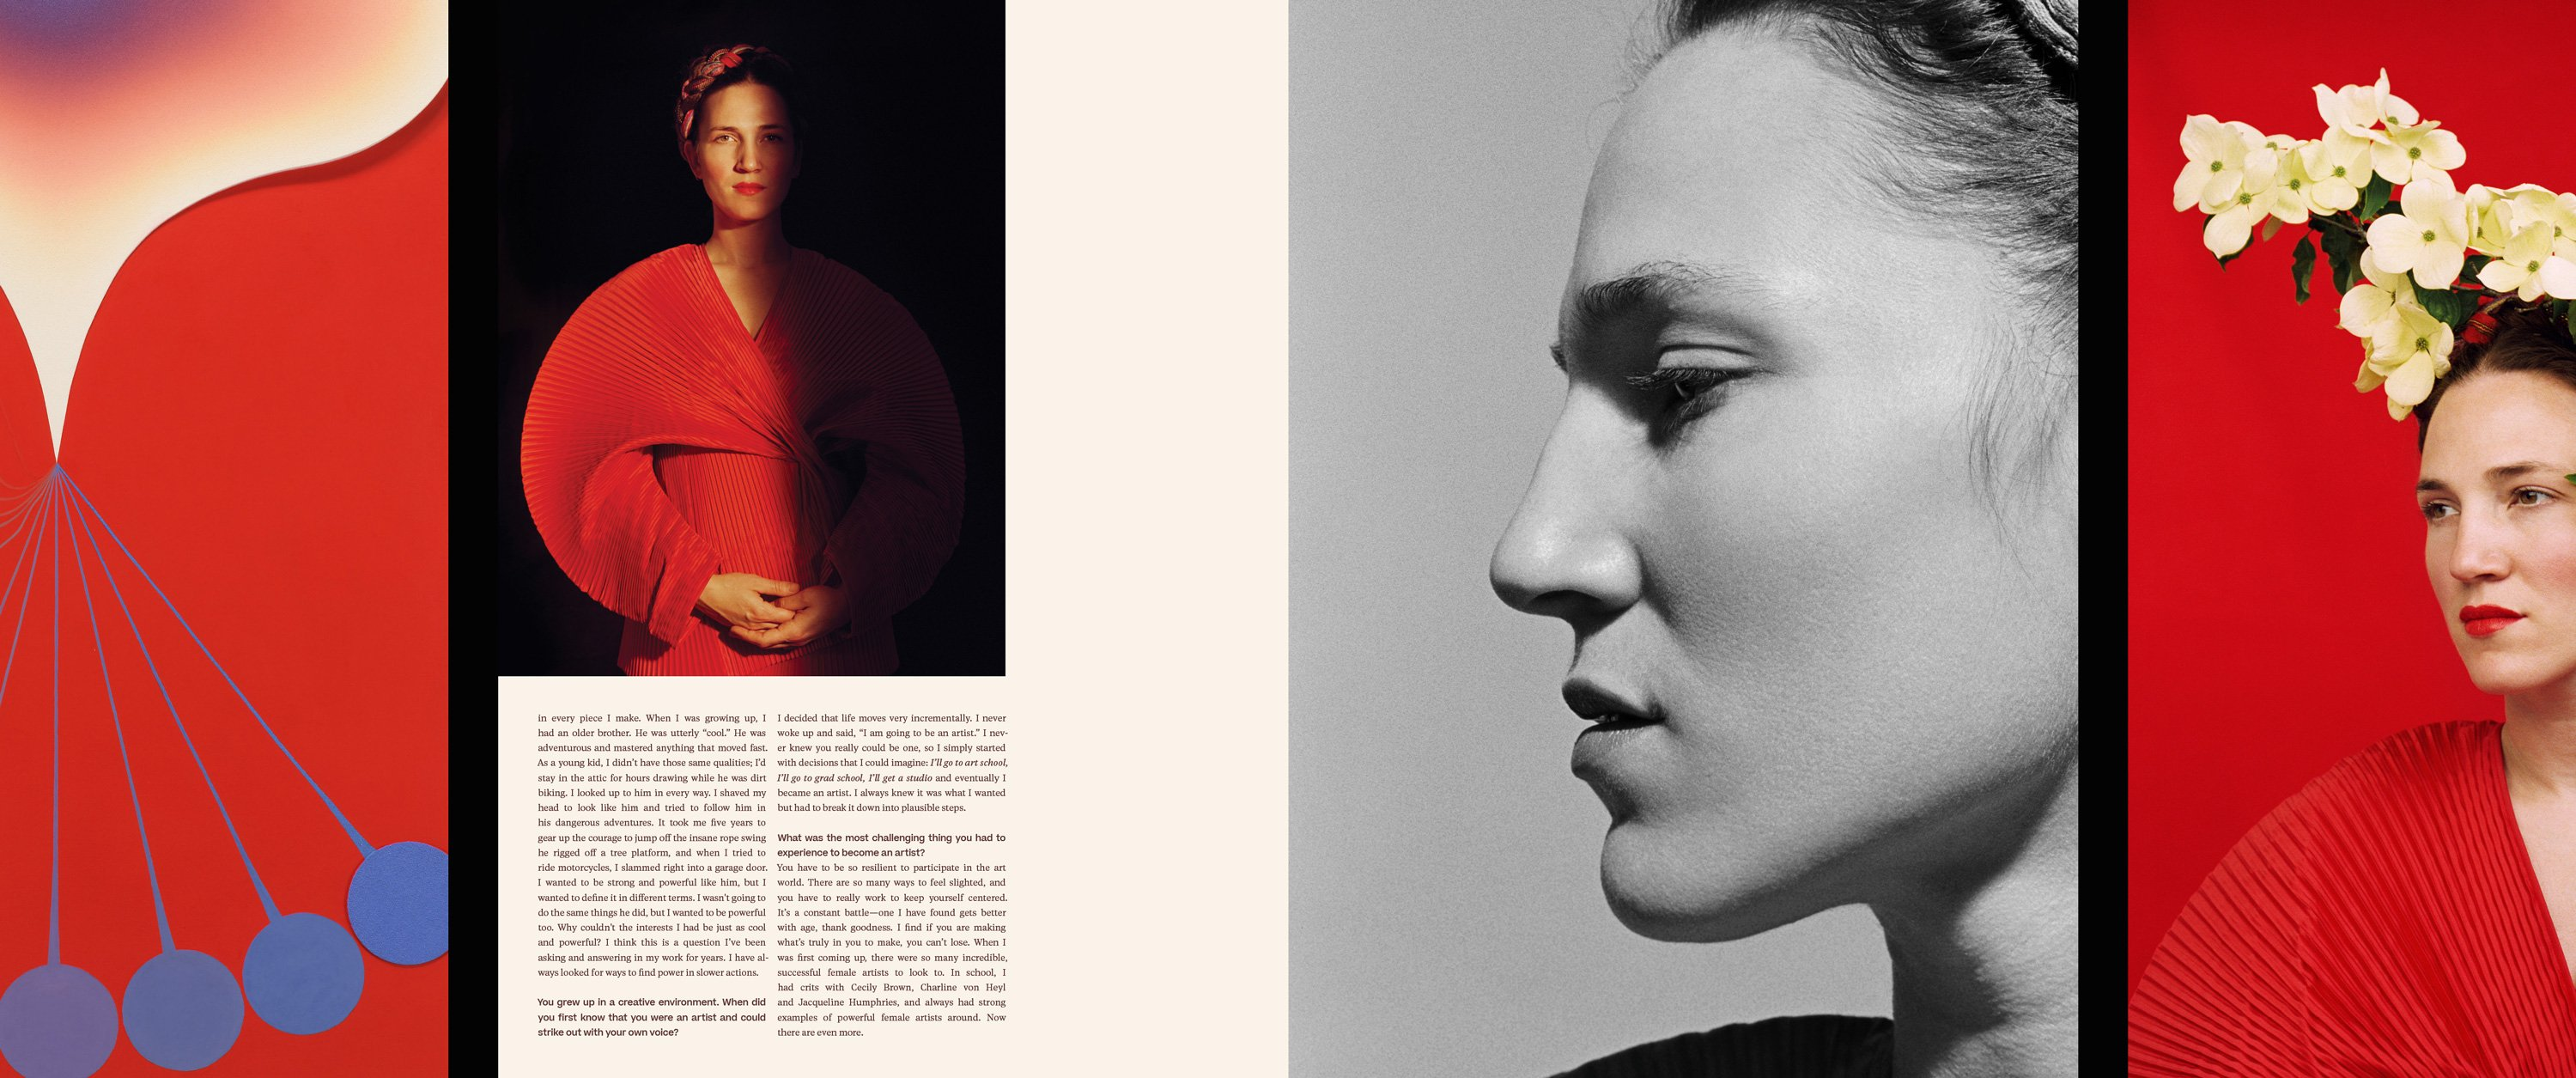 Romance Journal Issue 03 interior spread of Francesca DiMattio. Romance Journal issue 03 cover – Creation. Publication design, art direction, print design, interviews by RoAndCo